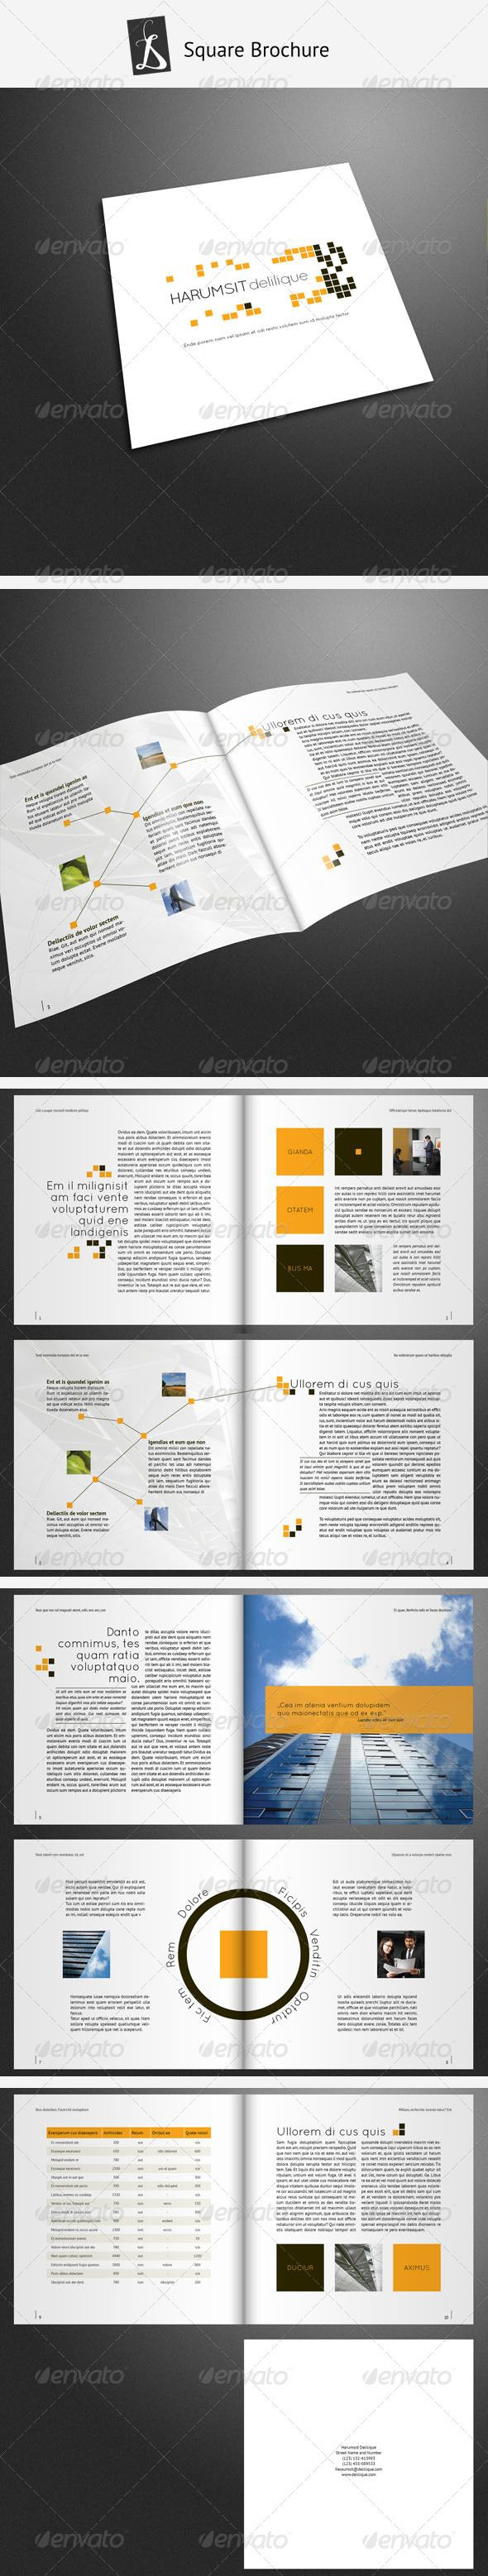 Corporate Brochure 15  #GraphicRiver              	 GraphicsFilesIncluded: InDesignINDD Layered: Yes MinimumAdobeCSVersion: CS4 PrintDimensions: 210x210 Tags: brochure #brohure #catalog #catalogue #clean #corporate #creative #elegant #fresh #landscape #leaflet #modern #neat #professional #typographic #typography